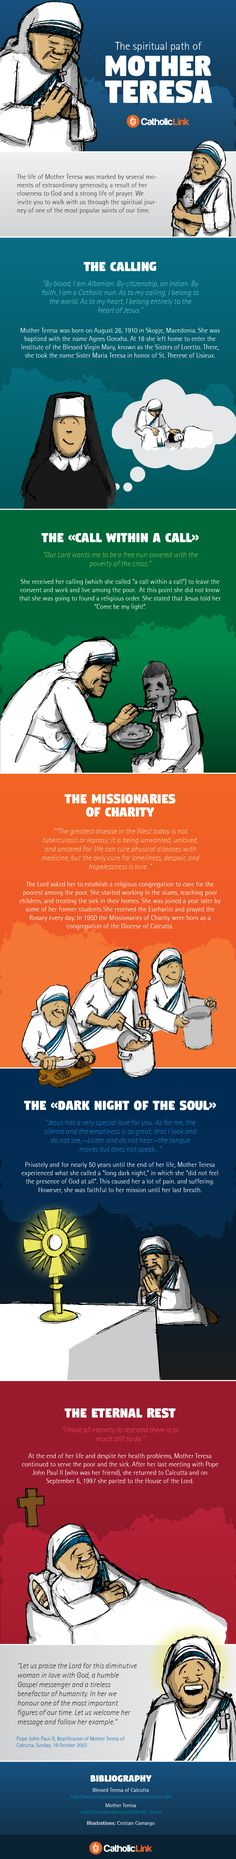 (Infographic) The Life and Holiness of Mother Teresa Illustrated!